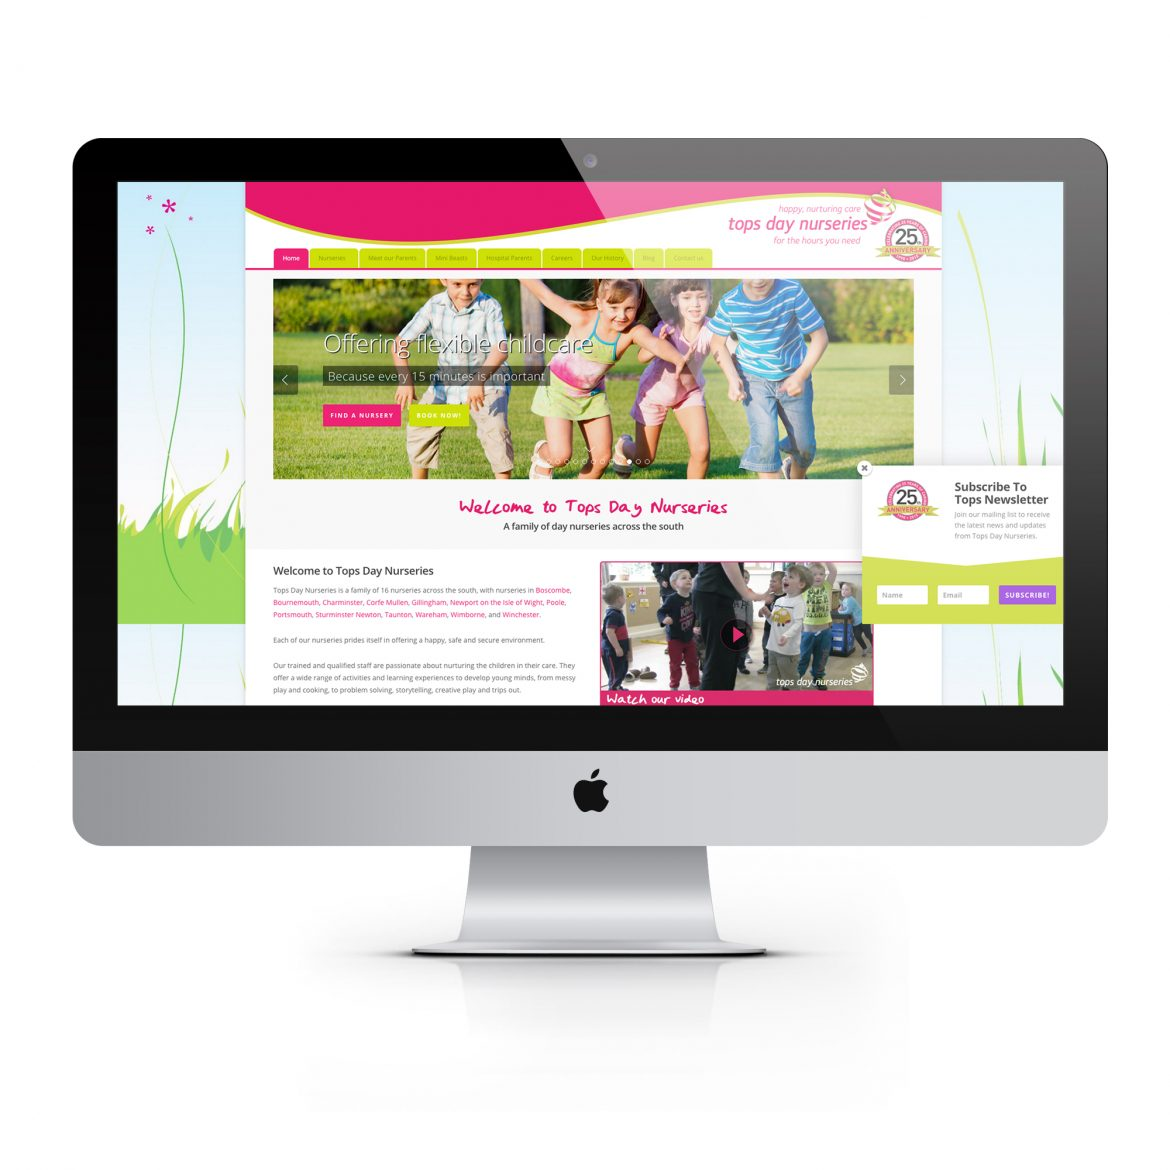 tops day nursery website on a Mac against a white background